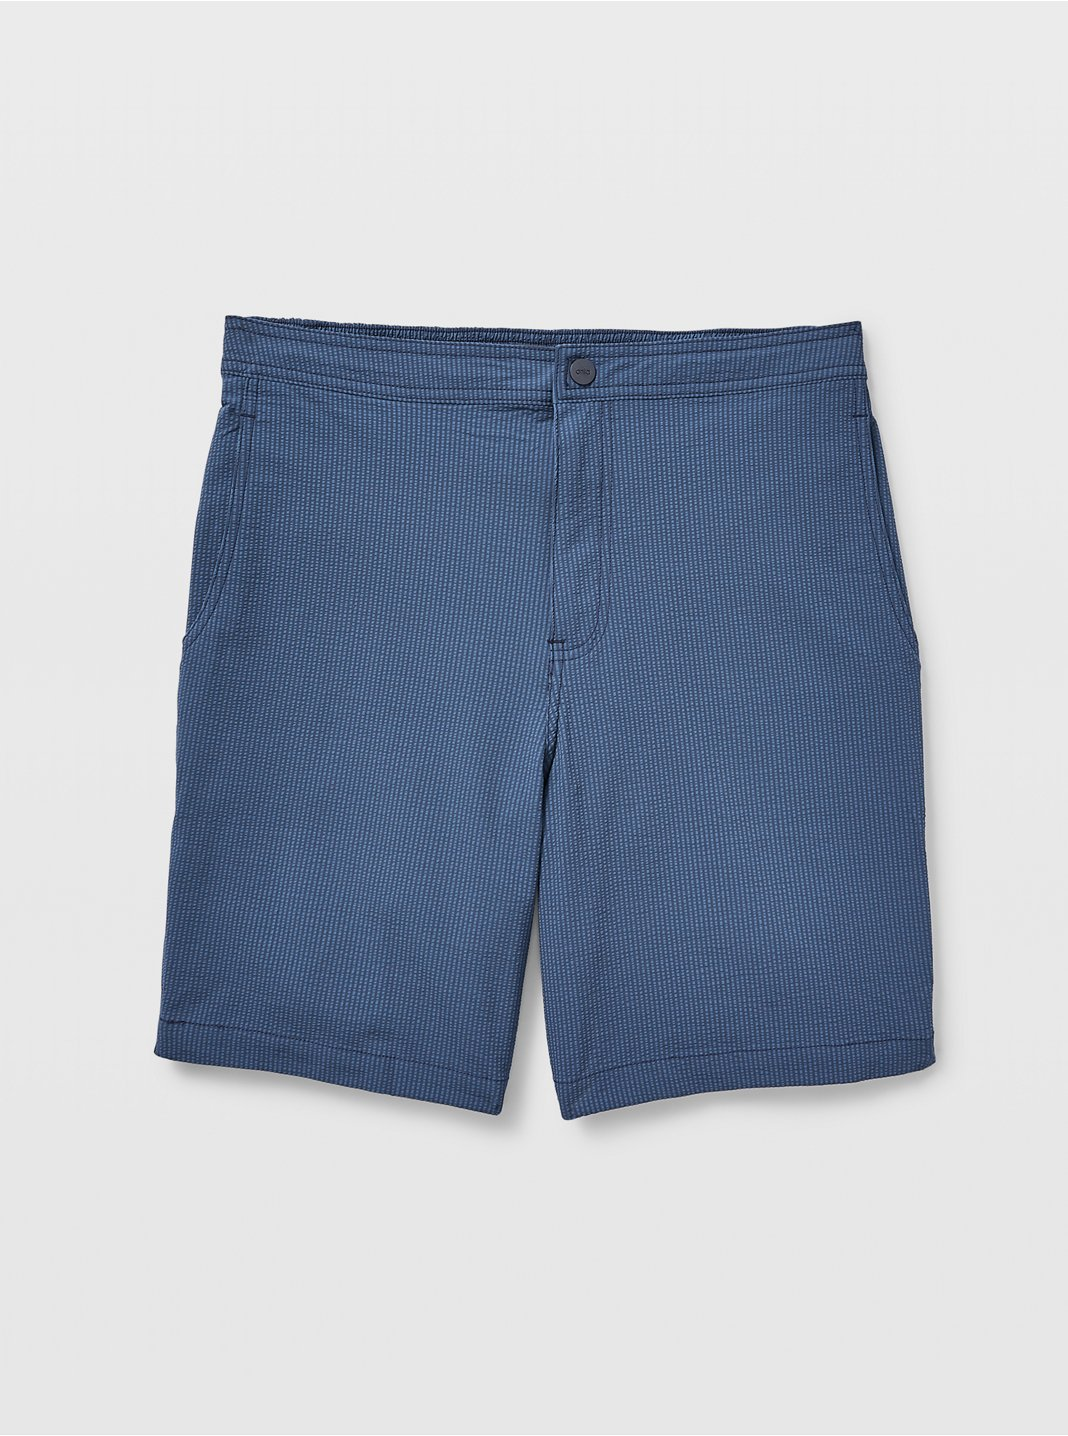 "Onia Calder 7"" Seersucker Swim Trunks"